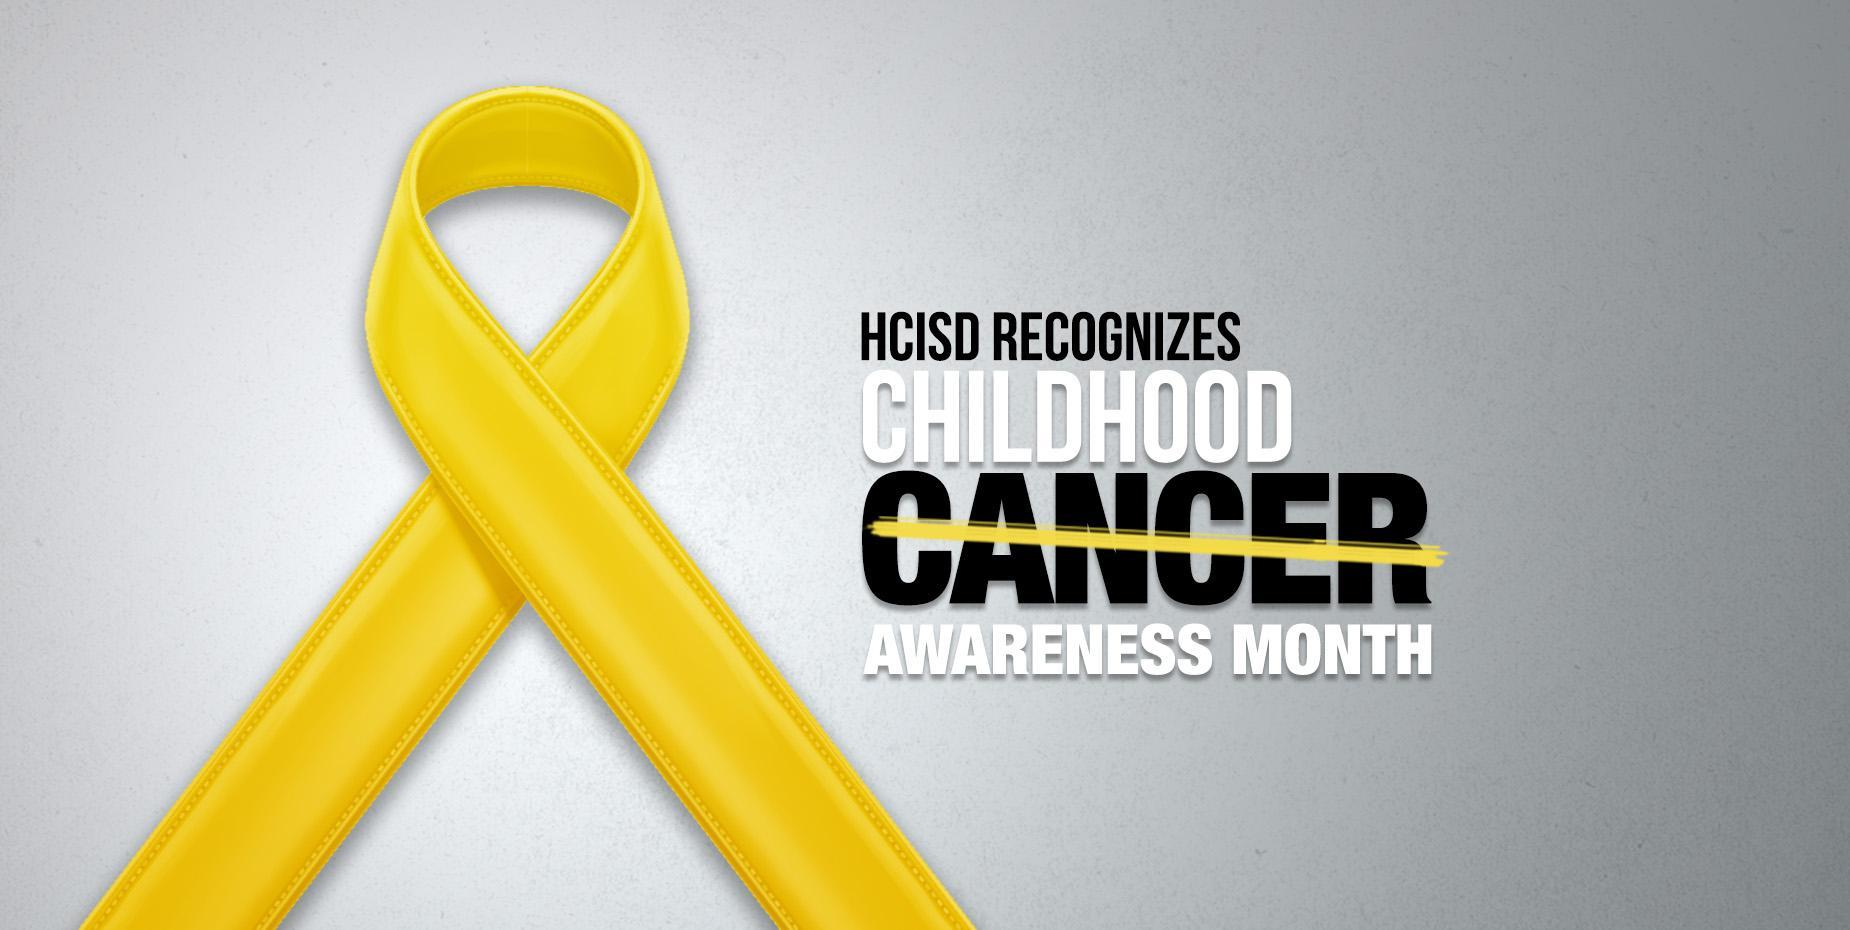 HCISD recognizes Childhood Cancer Awareness Month